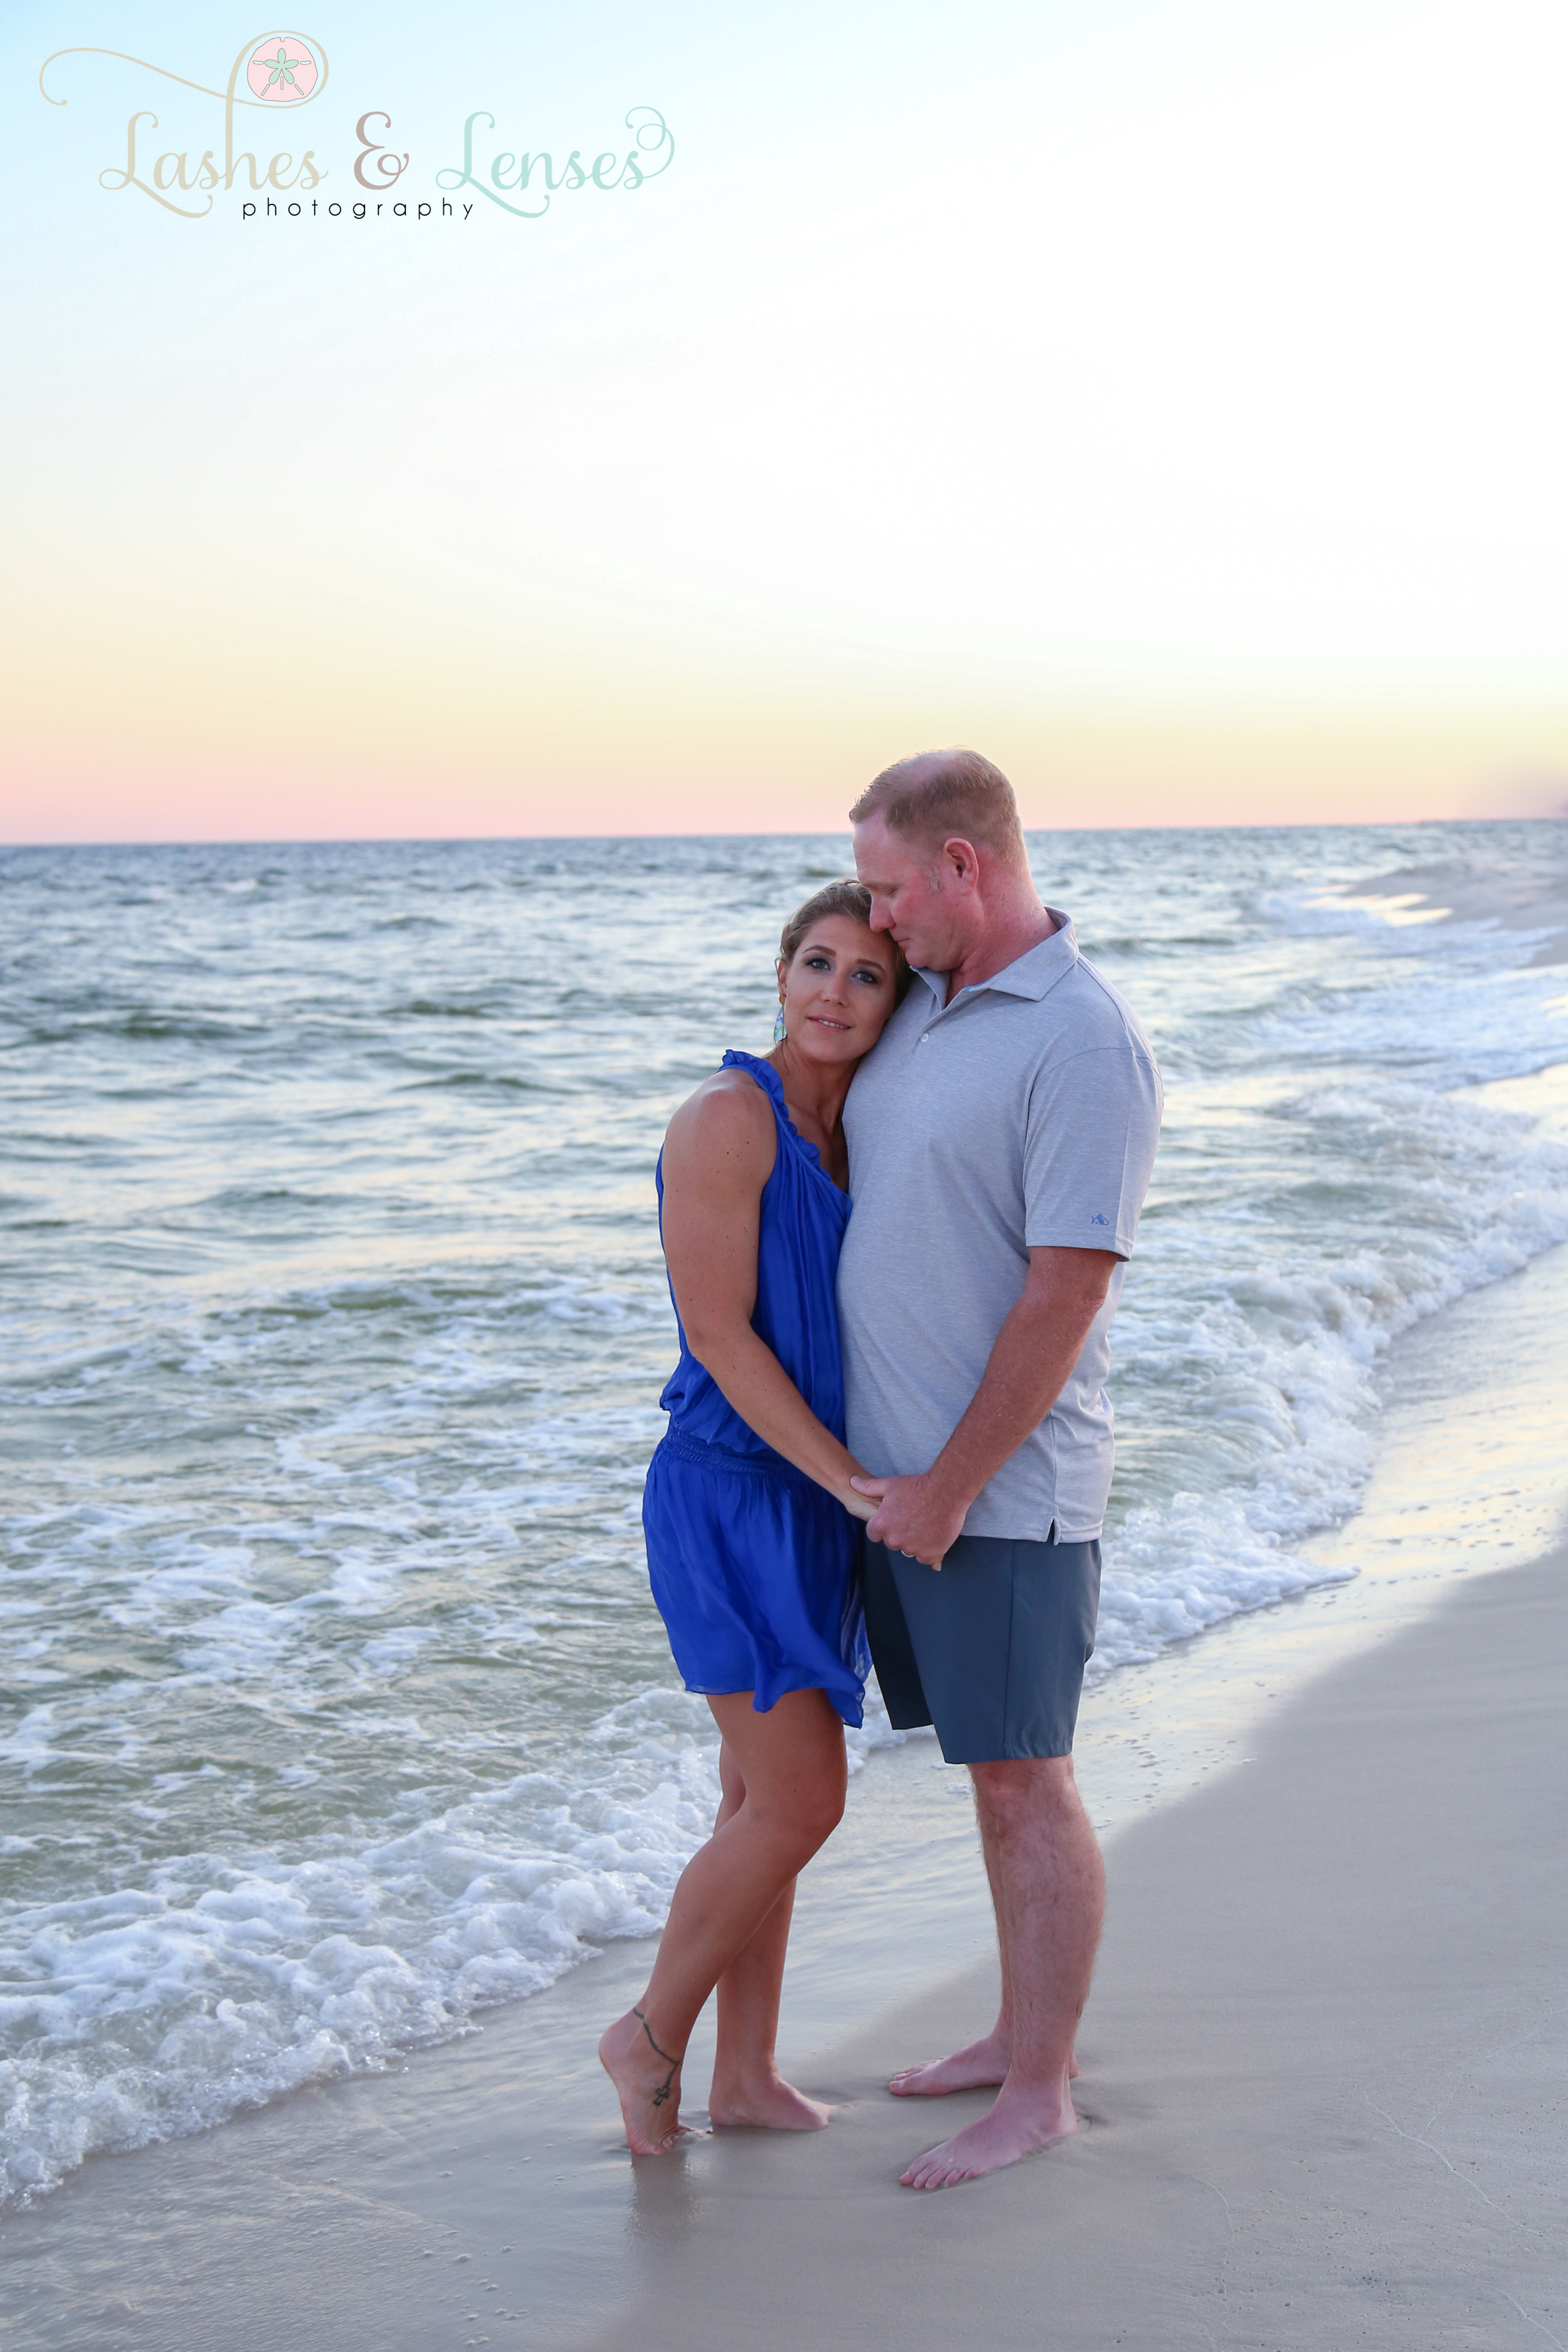 Husband kissing wife's temple next to the water  at Johnsons Beach in Perdido Key Florida